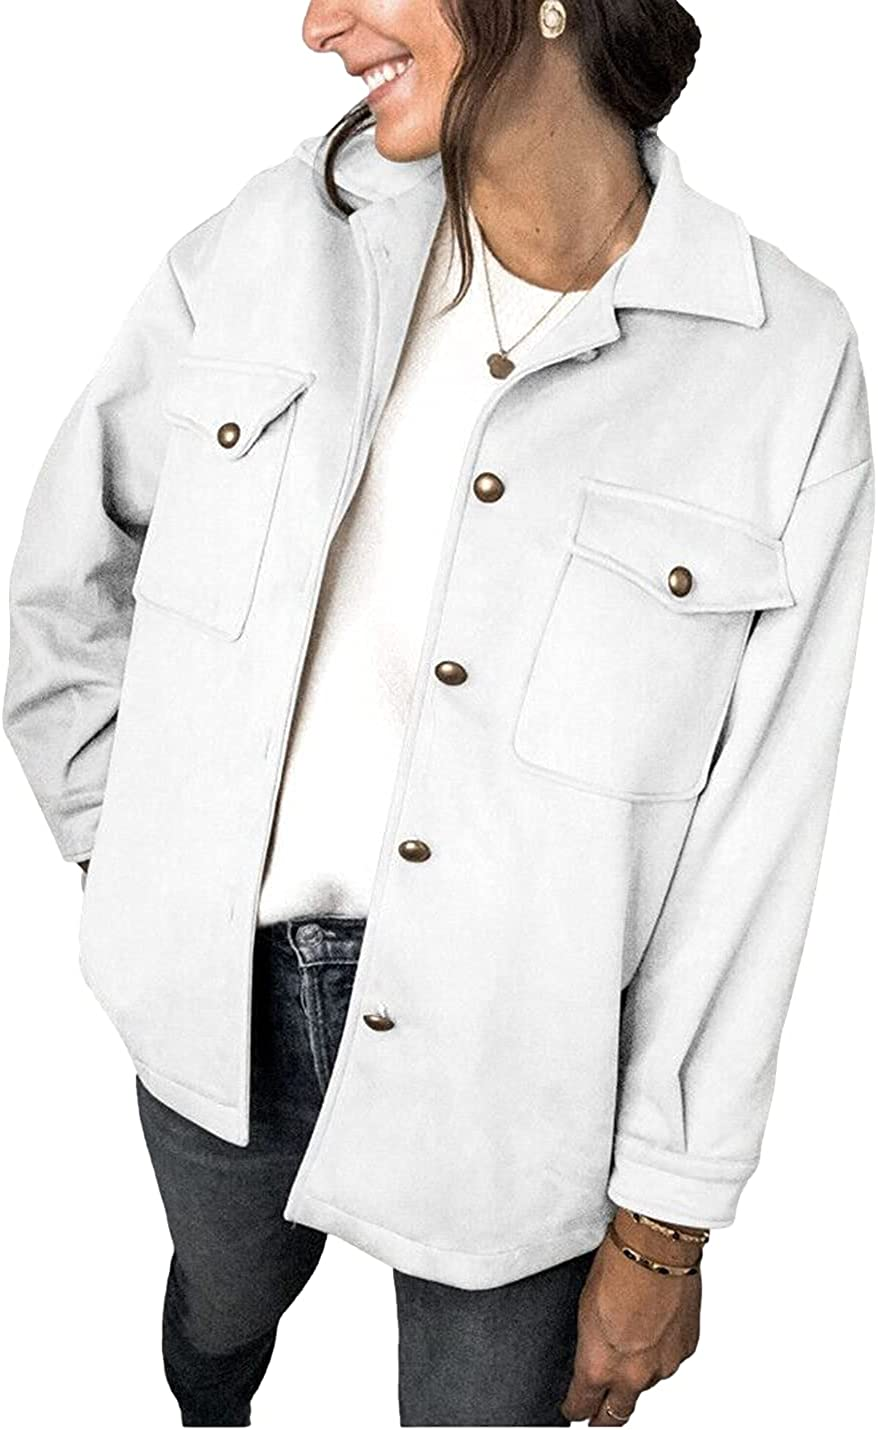 AMEBELLE Philadelphia Mall Women's Faux Suede San Diego Mall Jackets Pocketed Sleeve B Lapel Long